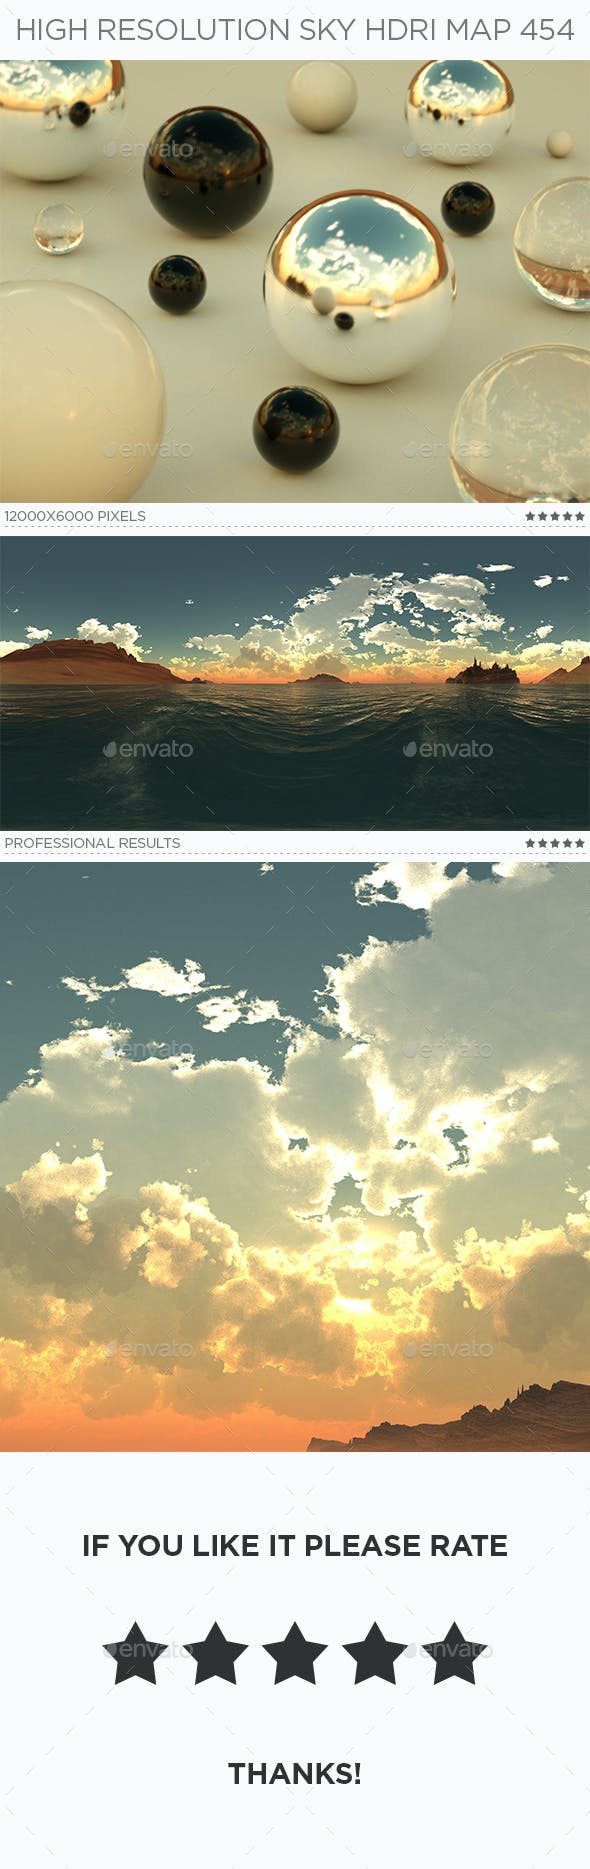 High Resolution Sky HDRi Map 454 - 3DOcean Item for Sale